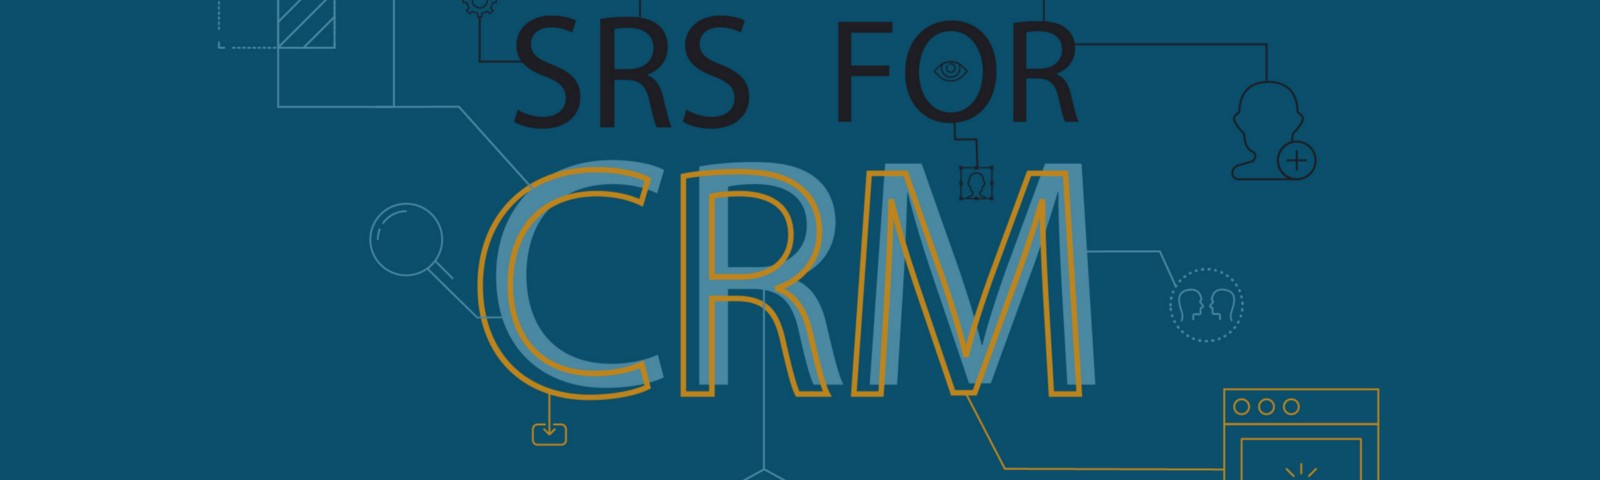 How To Create An SRS For CRM  Simple SRS Template For A Fast